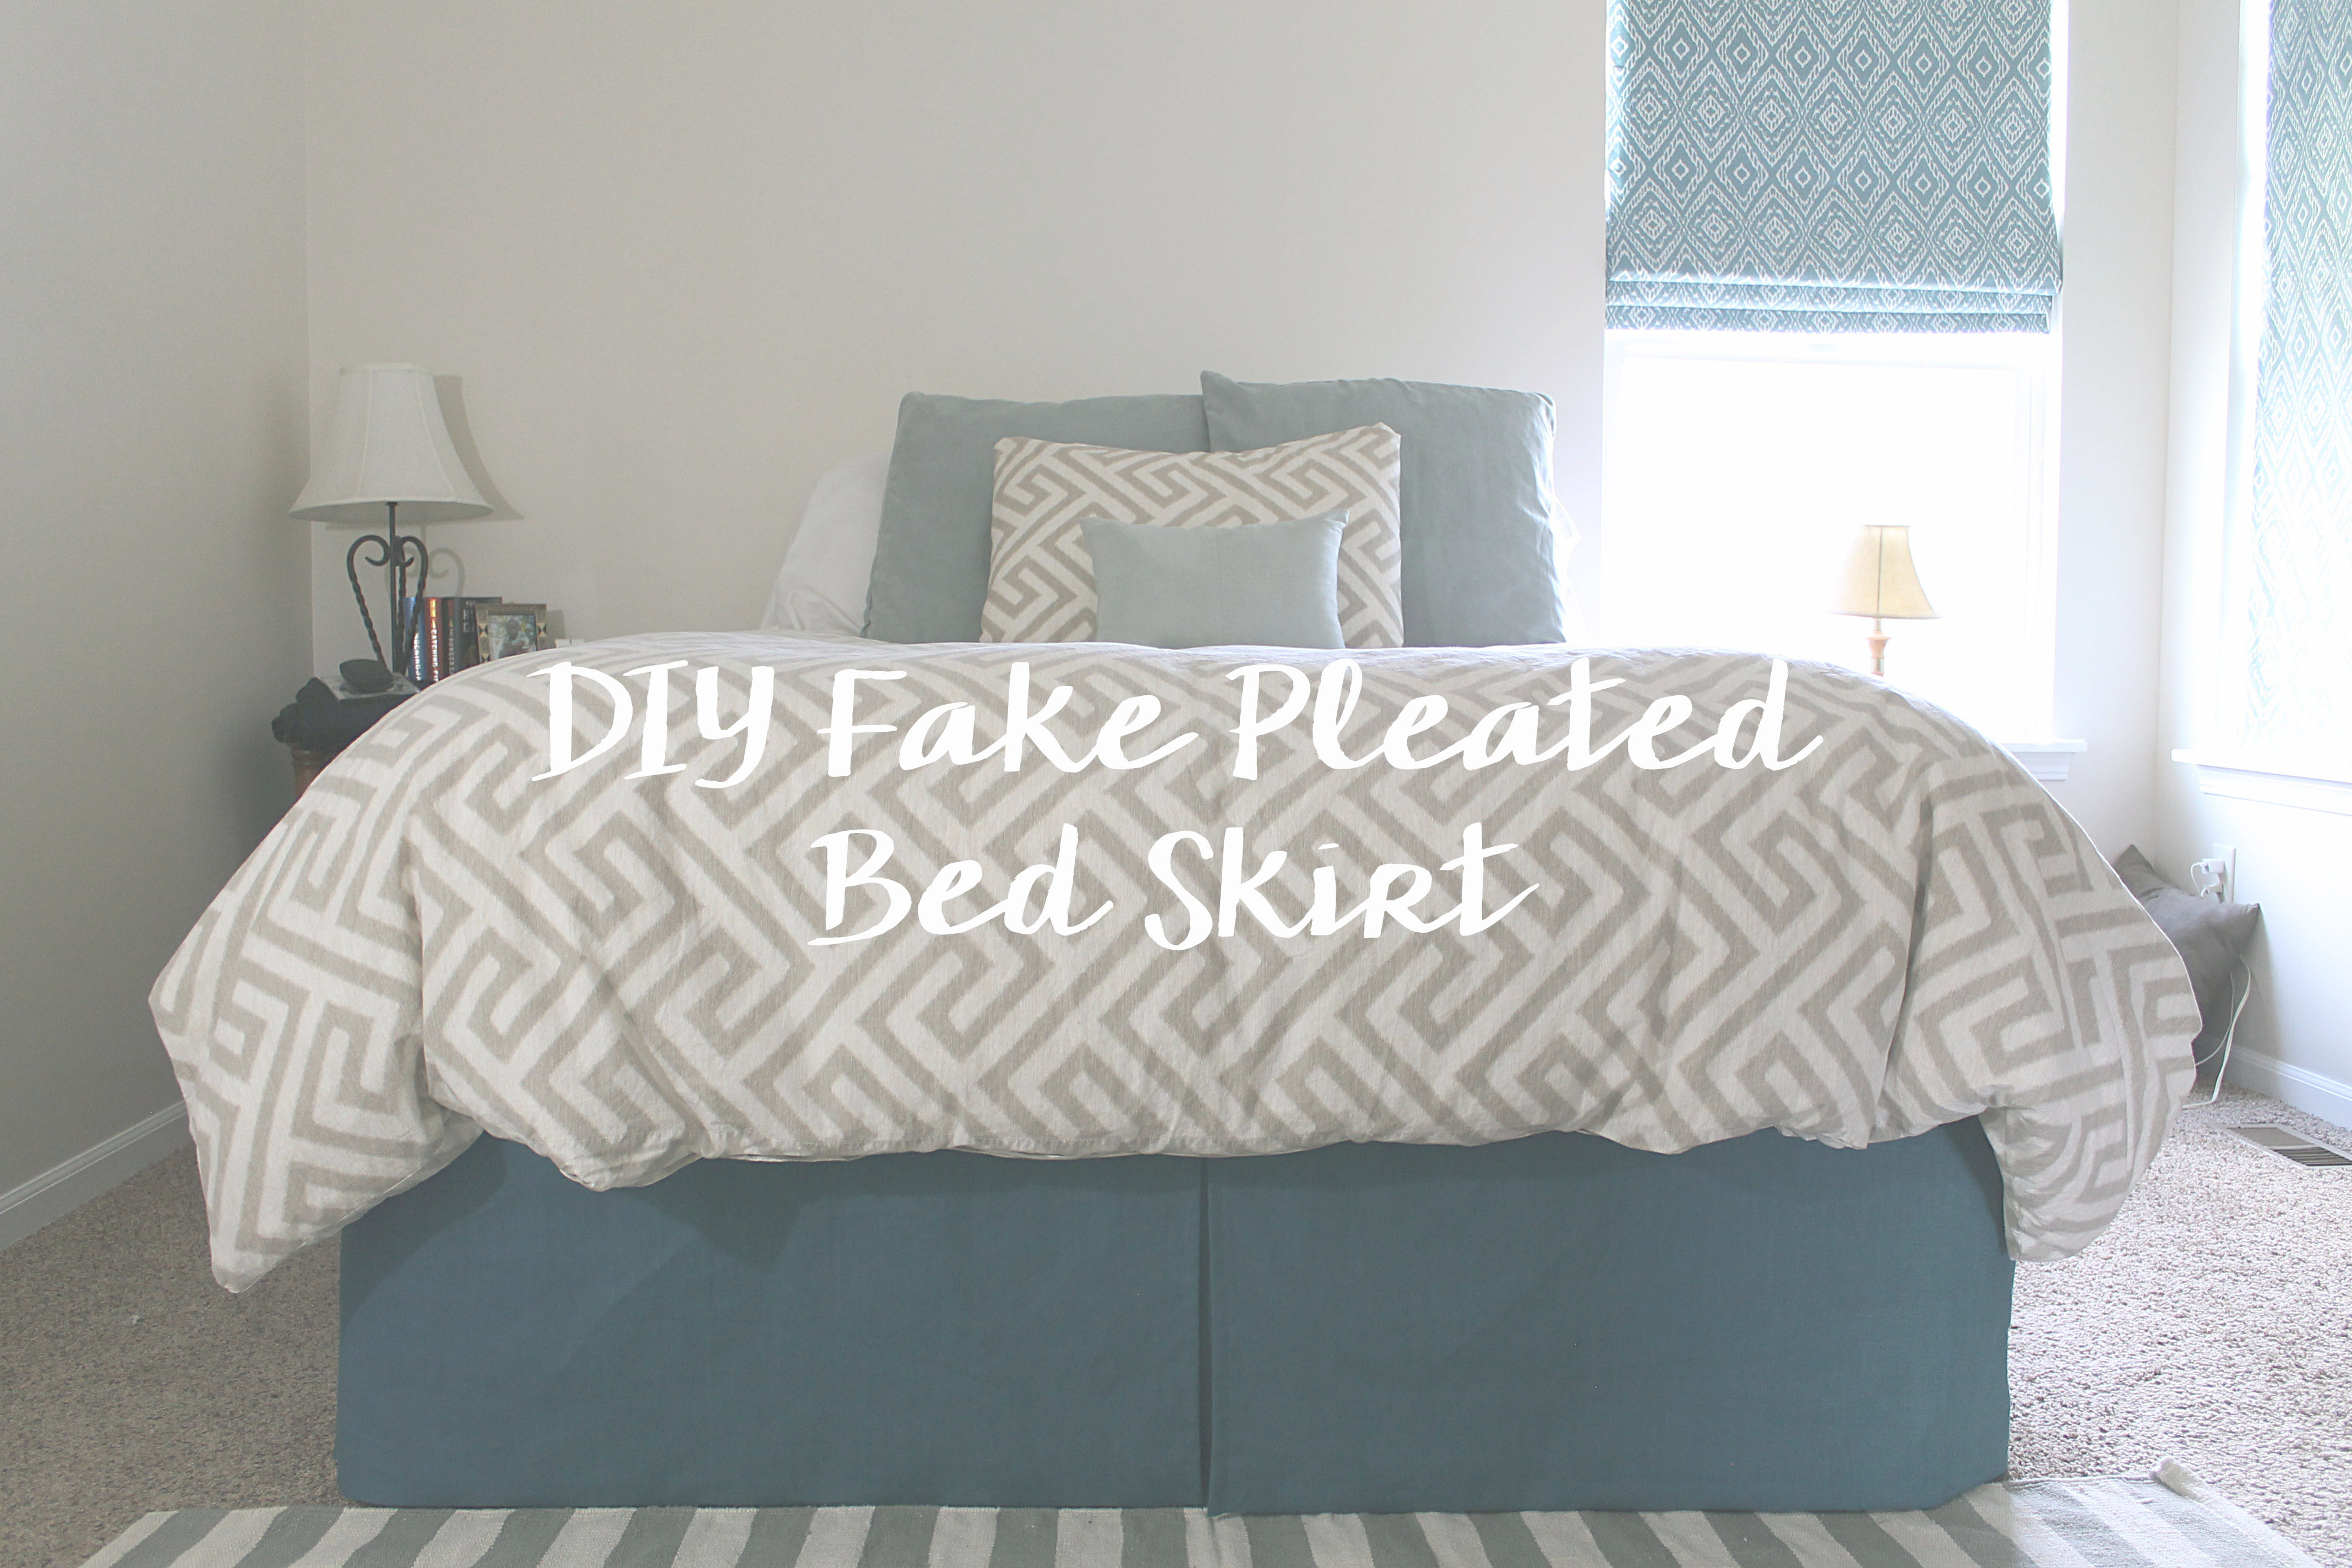 Make Your Own Fake Pleated Bedskirt The Jaderstons